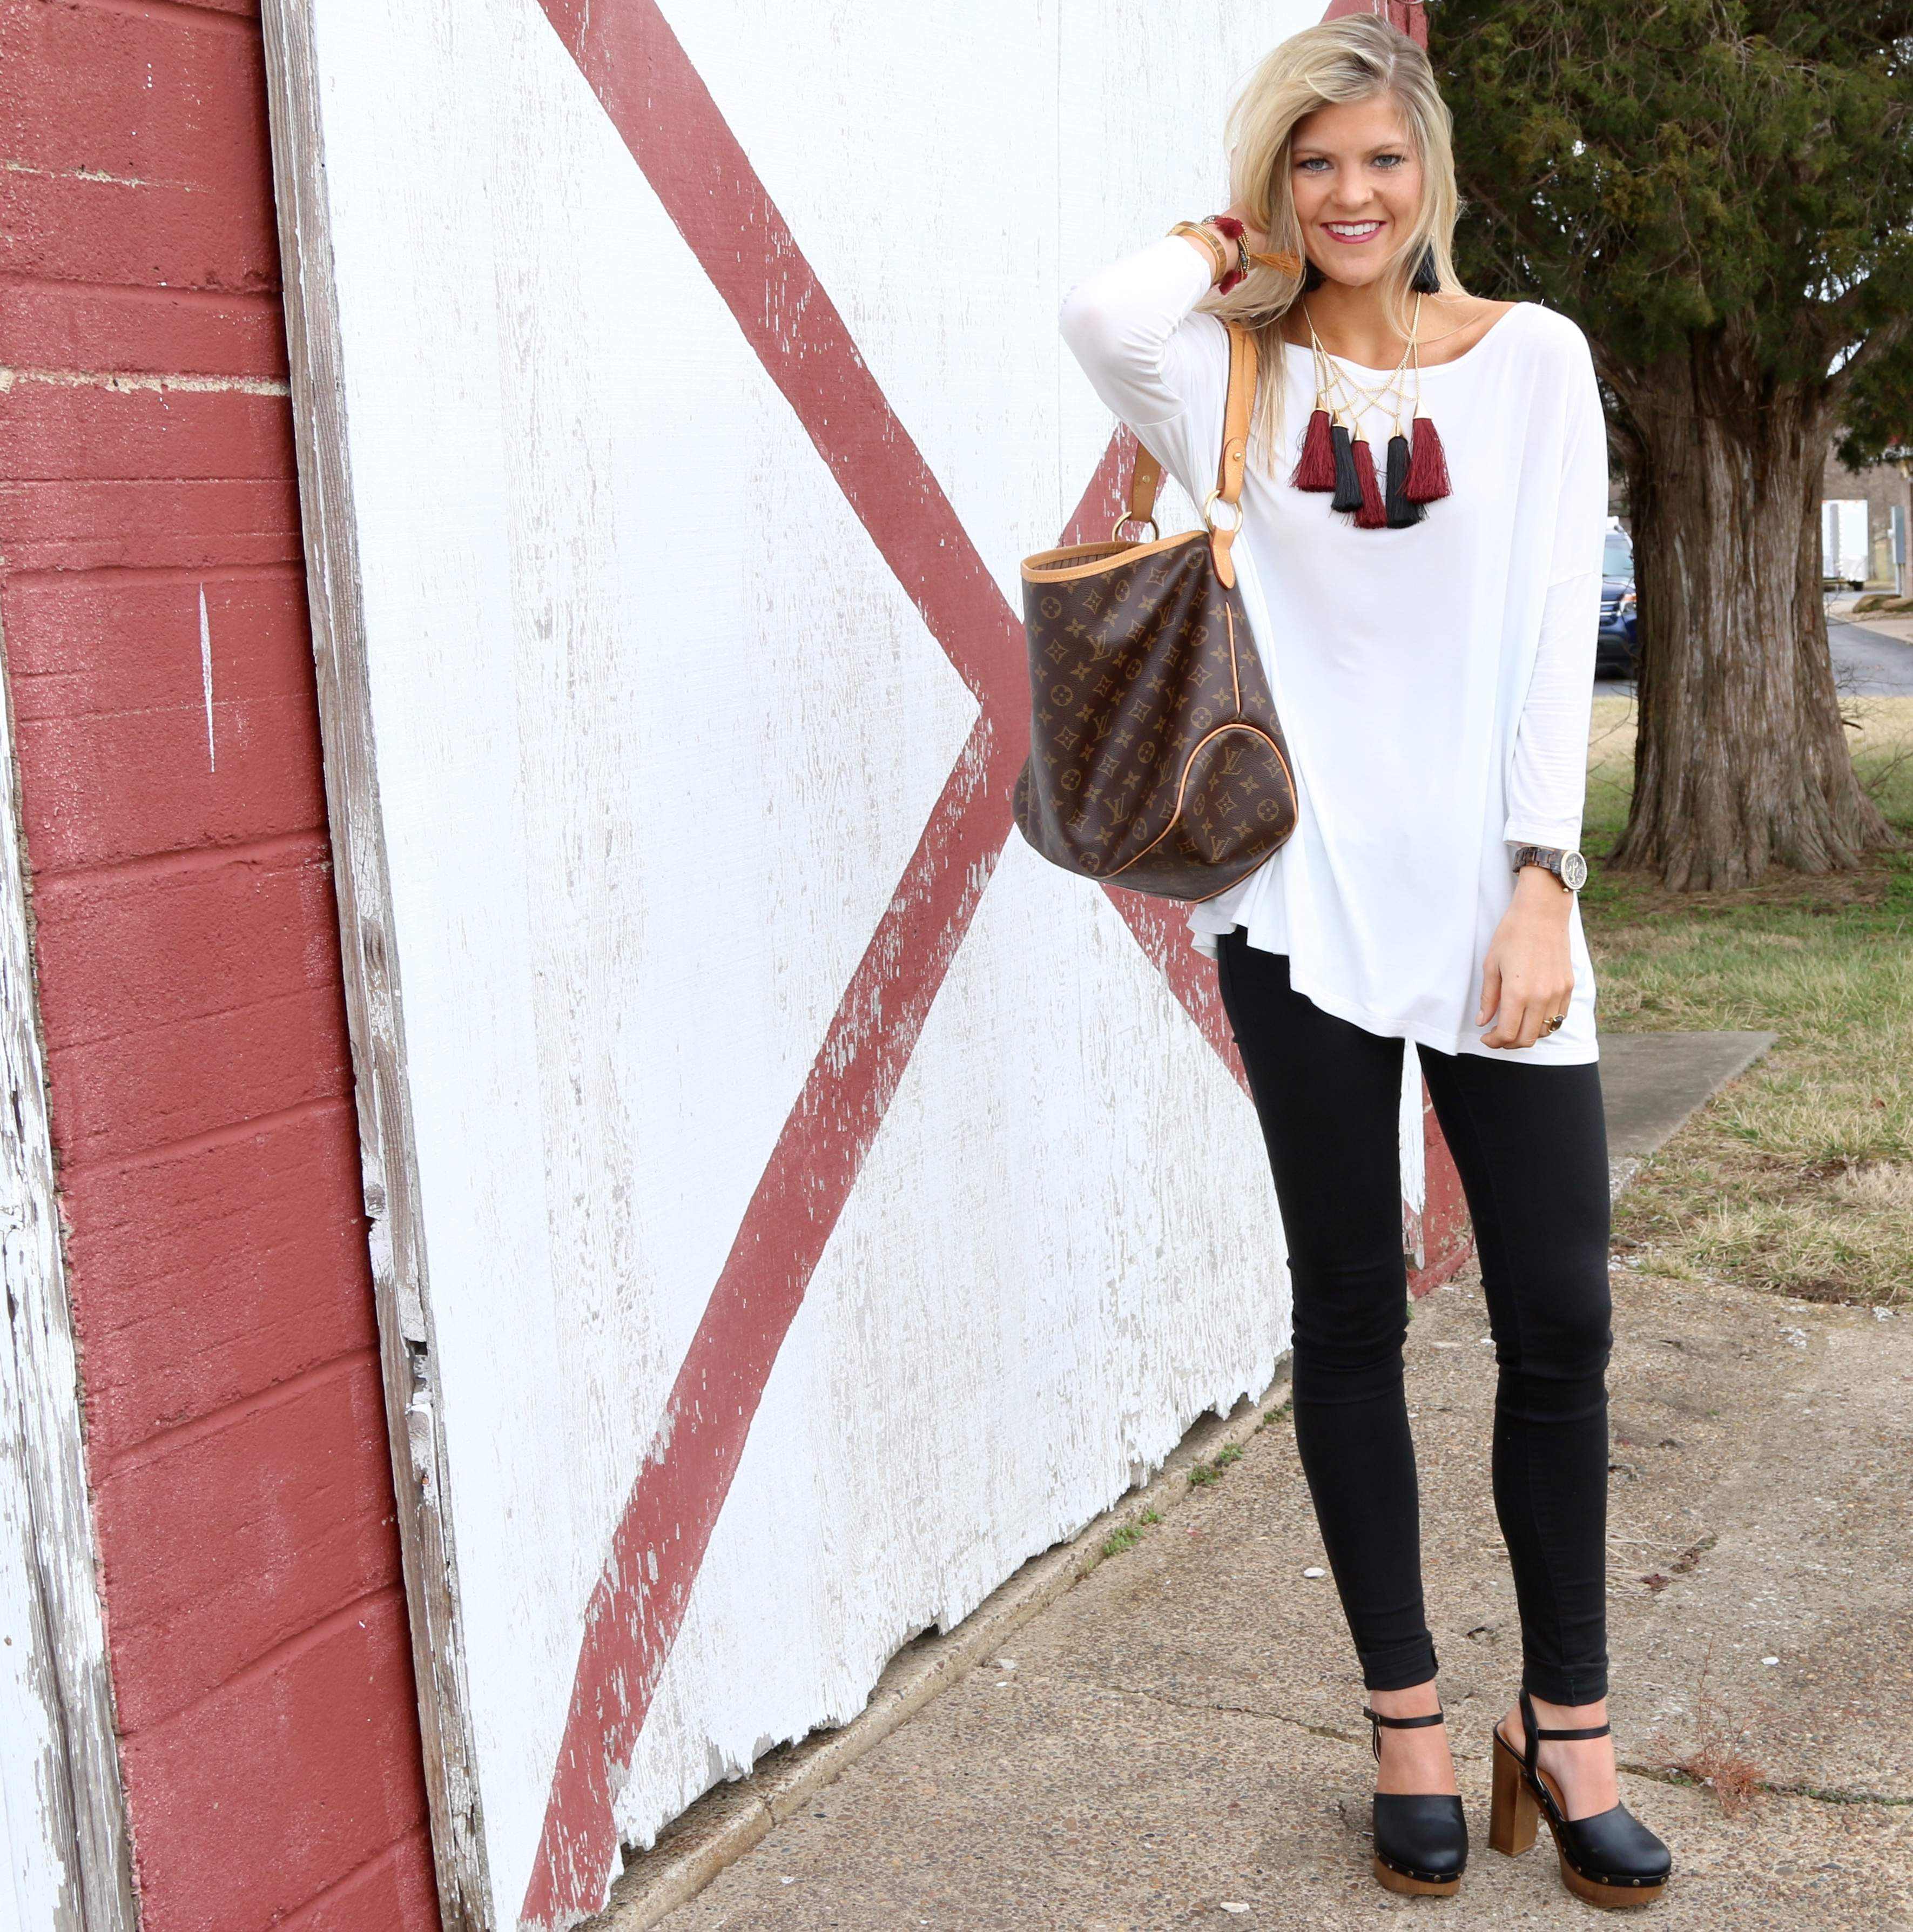 Black & White Outfit with Tassel Necklace